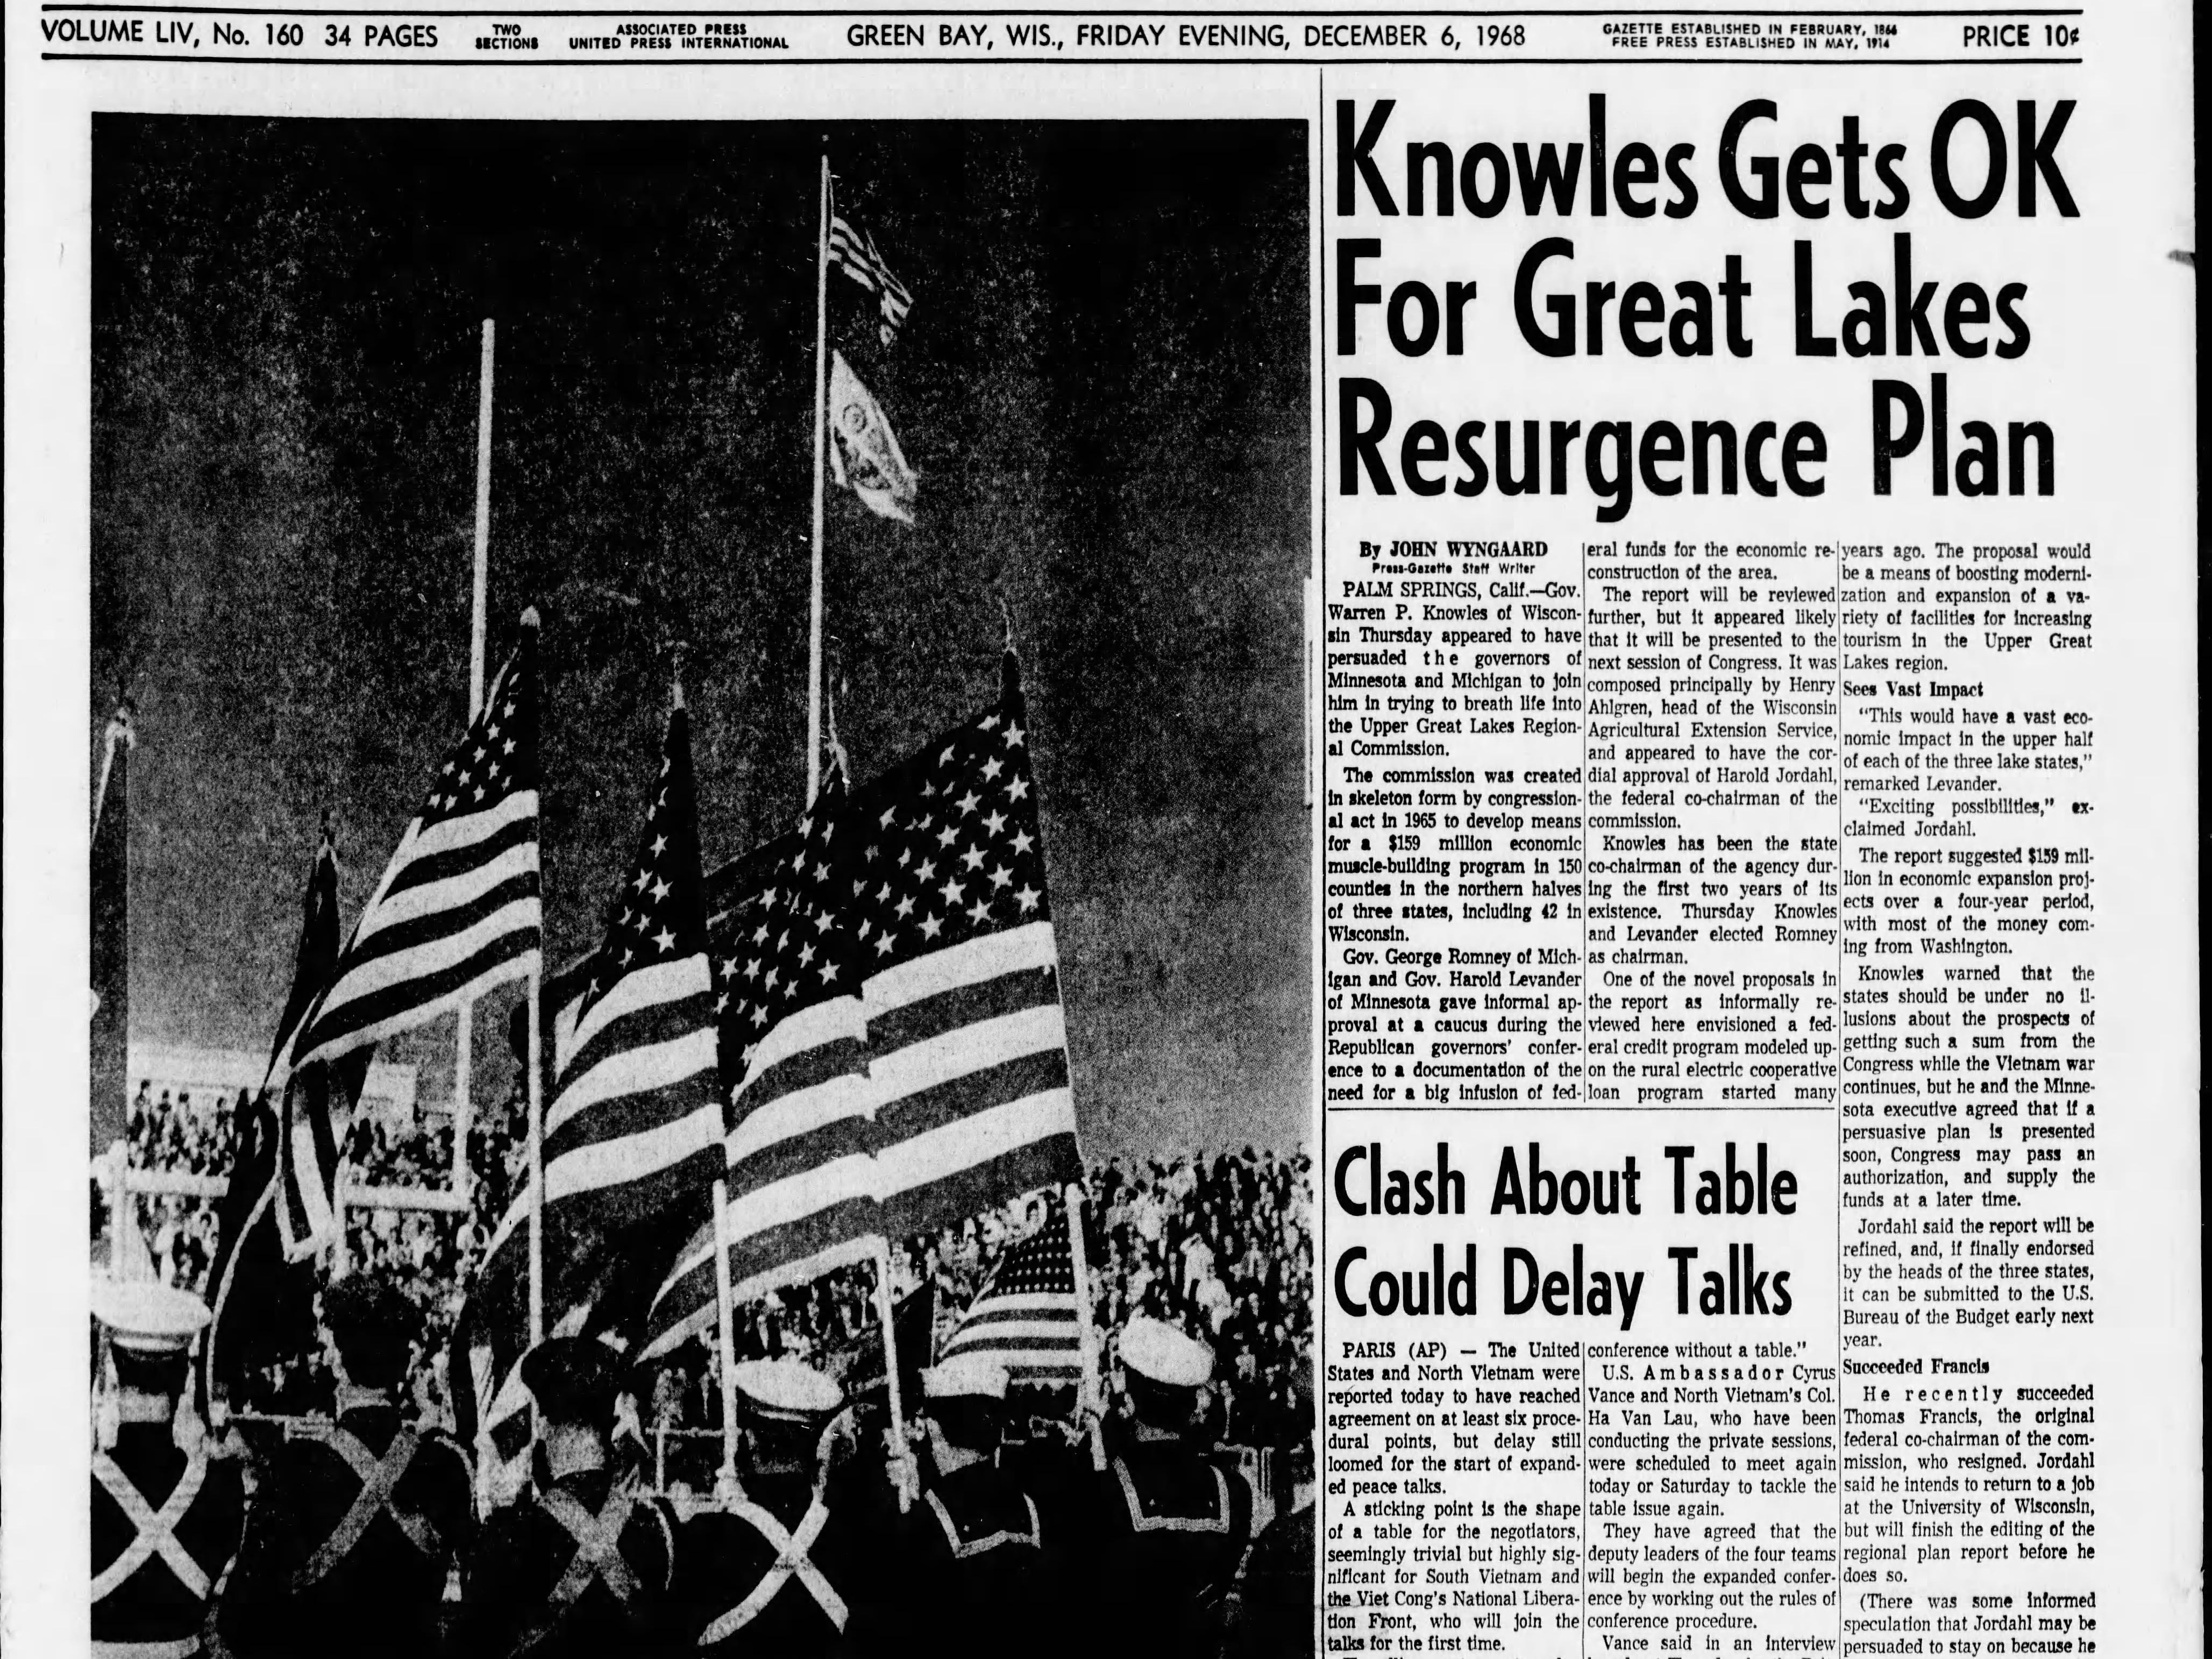 Today in History:  Dec. 6,1968